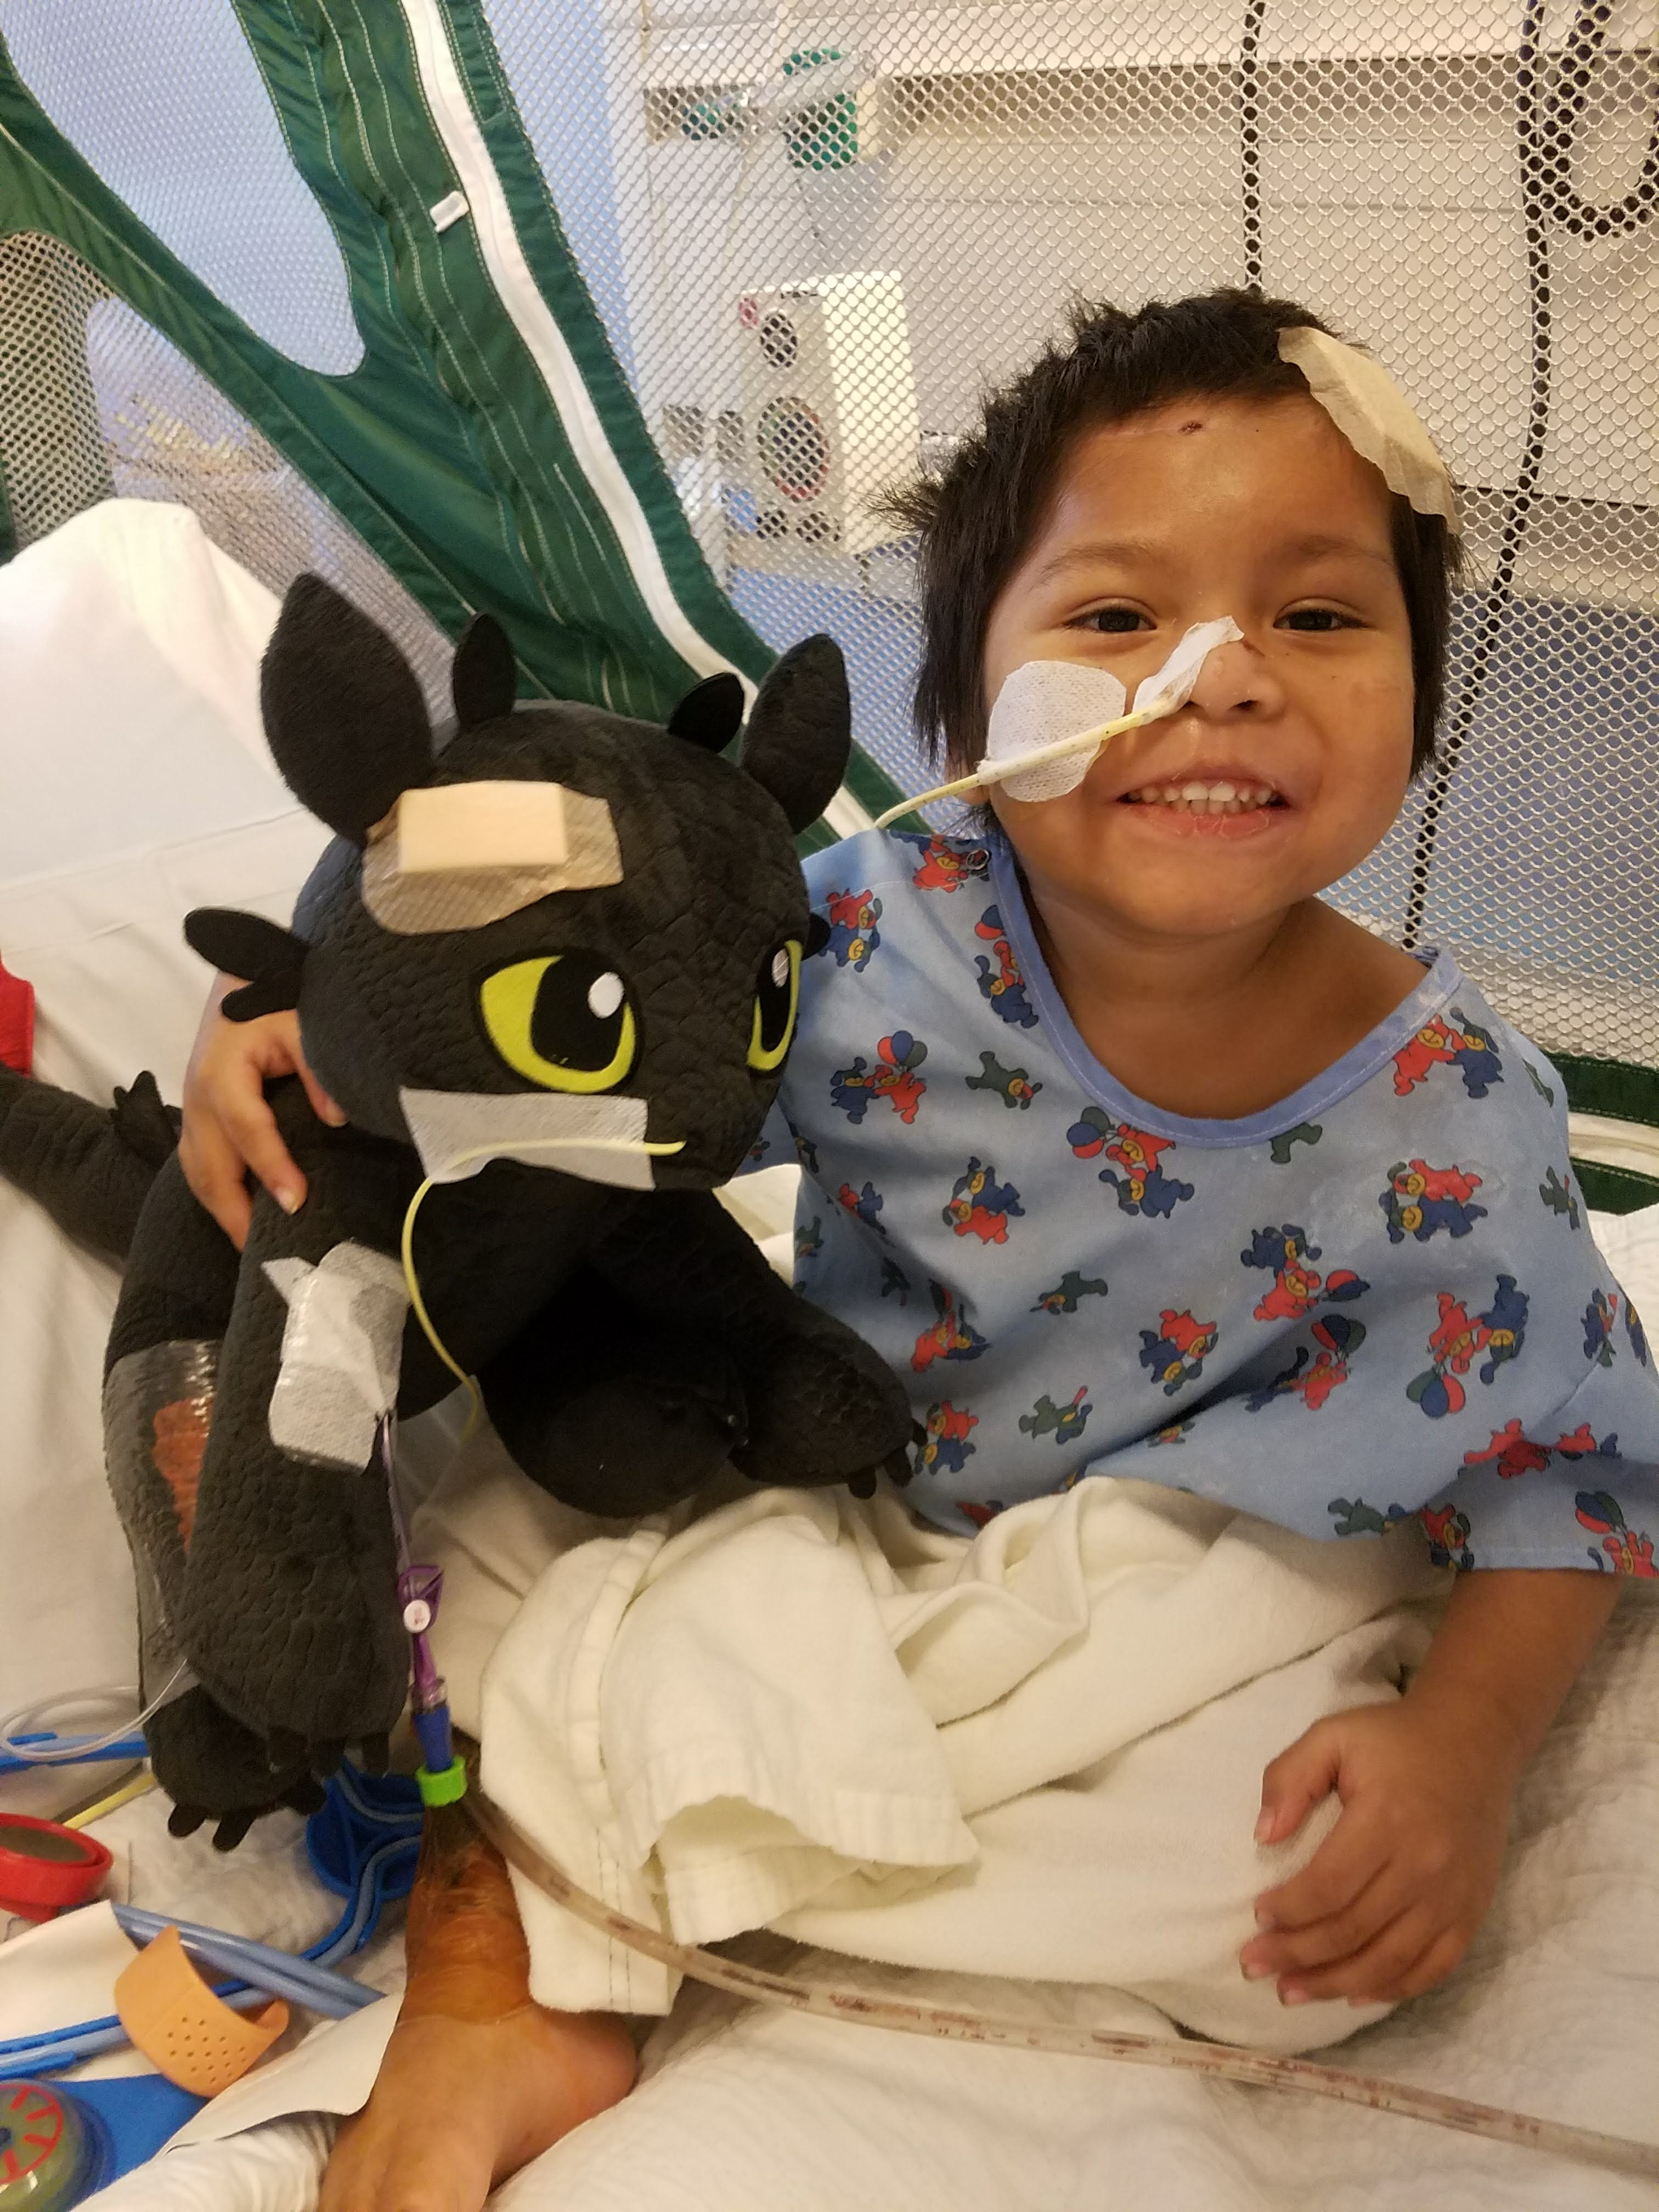 During his 11-month stay in the hospital, Abraham's stuffed animals received bandages and a feeding tube out of solidarity with the recovering boy. Credit: UCLA